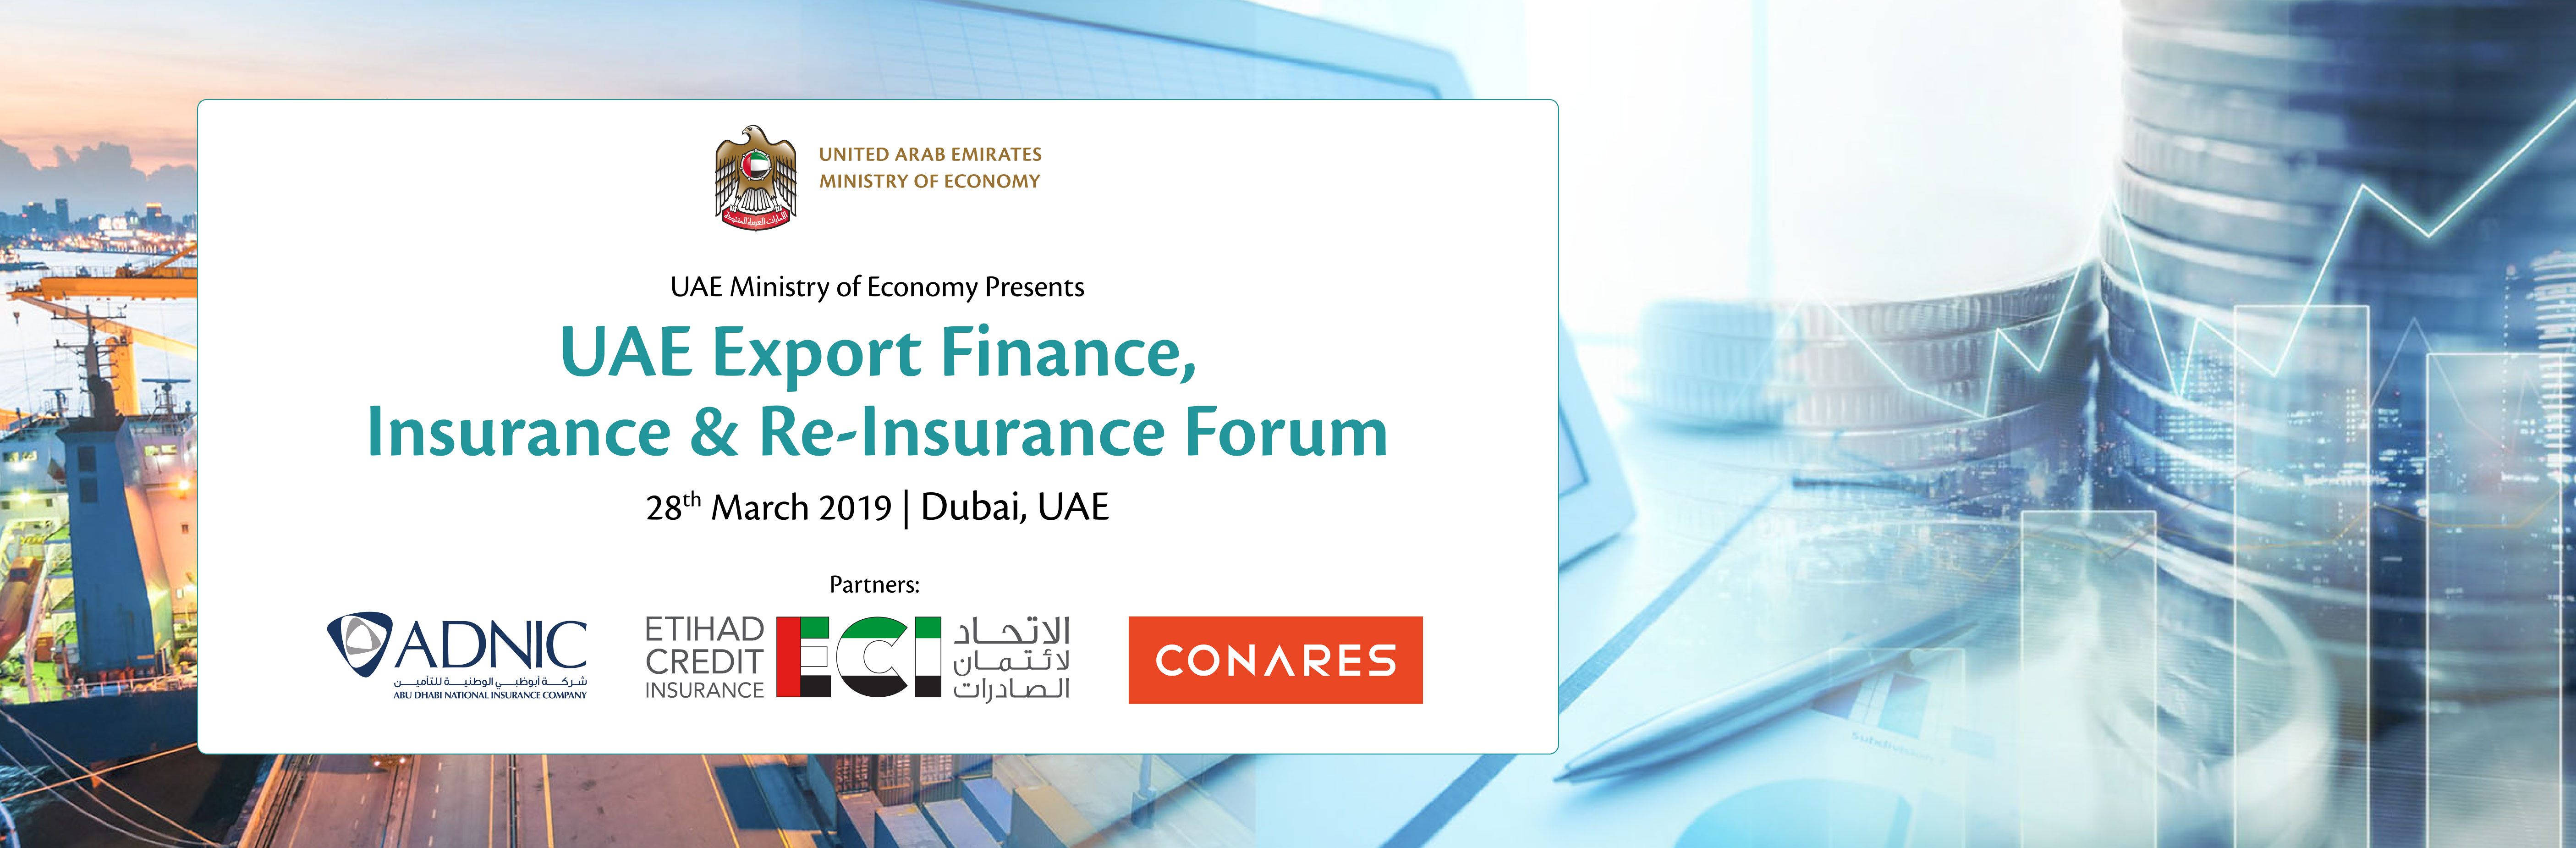 UAE Export Finance, Insurance and Re-Insurance Forum - 28th March 2019